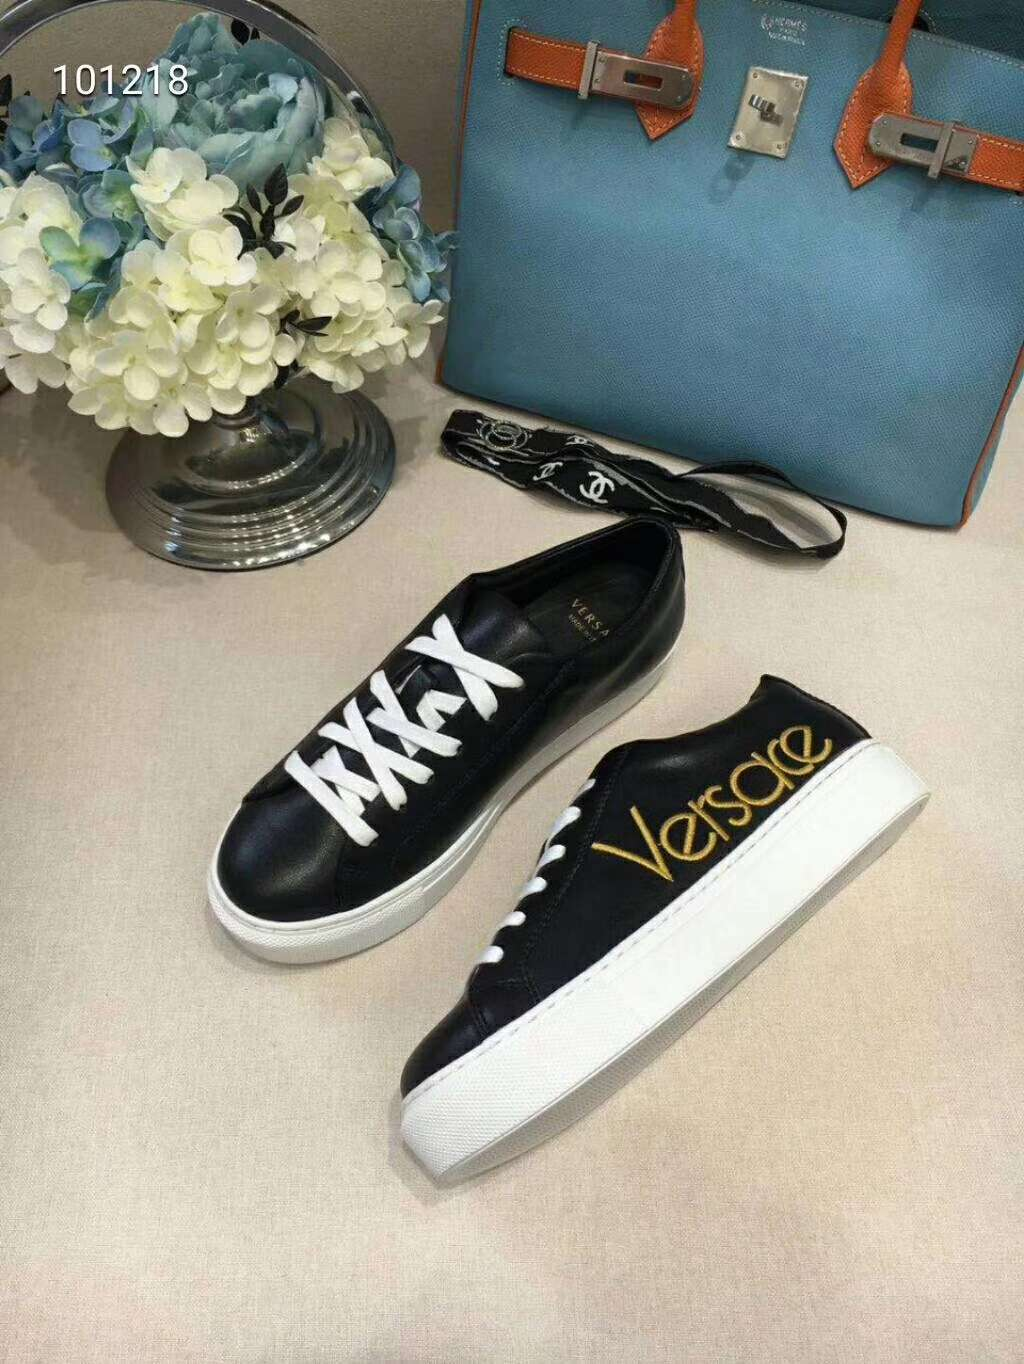 2019 NEW Versace Real leather shoes VERSACE101218black